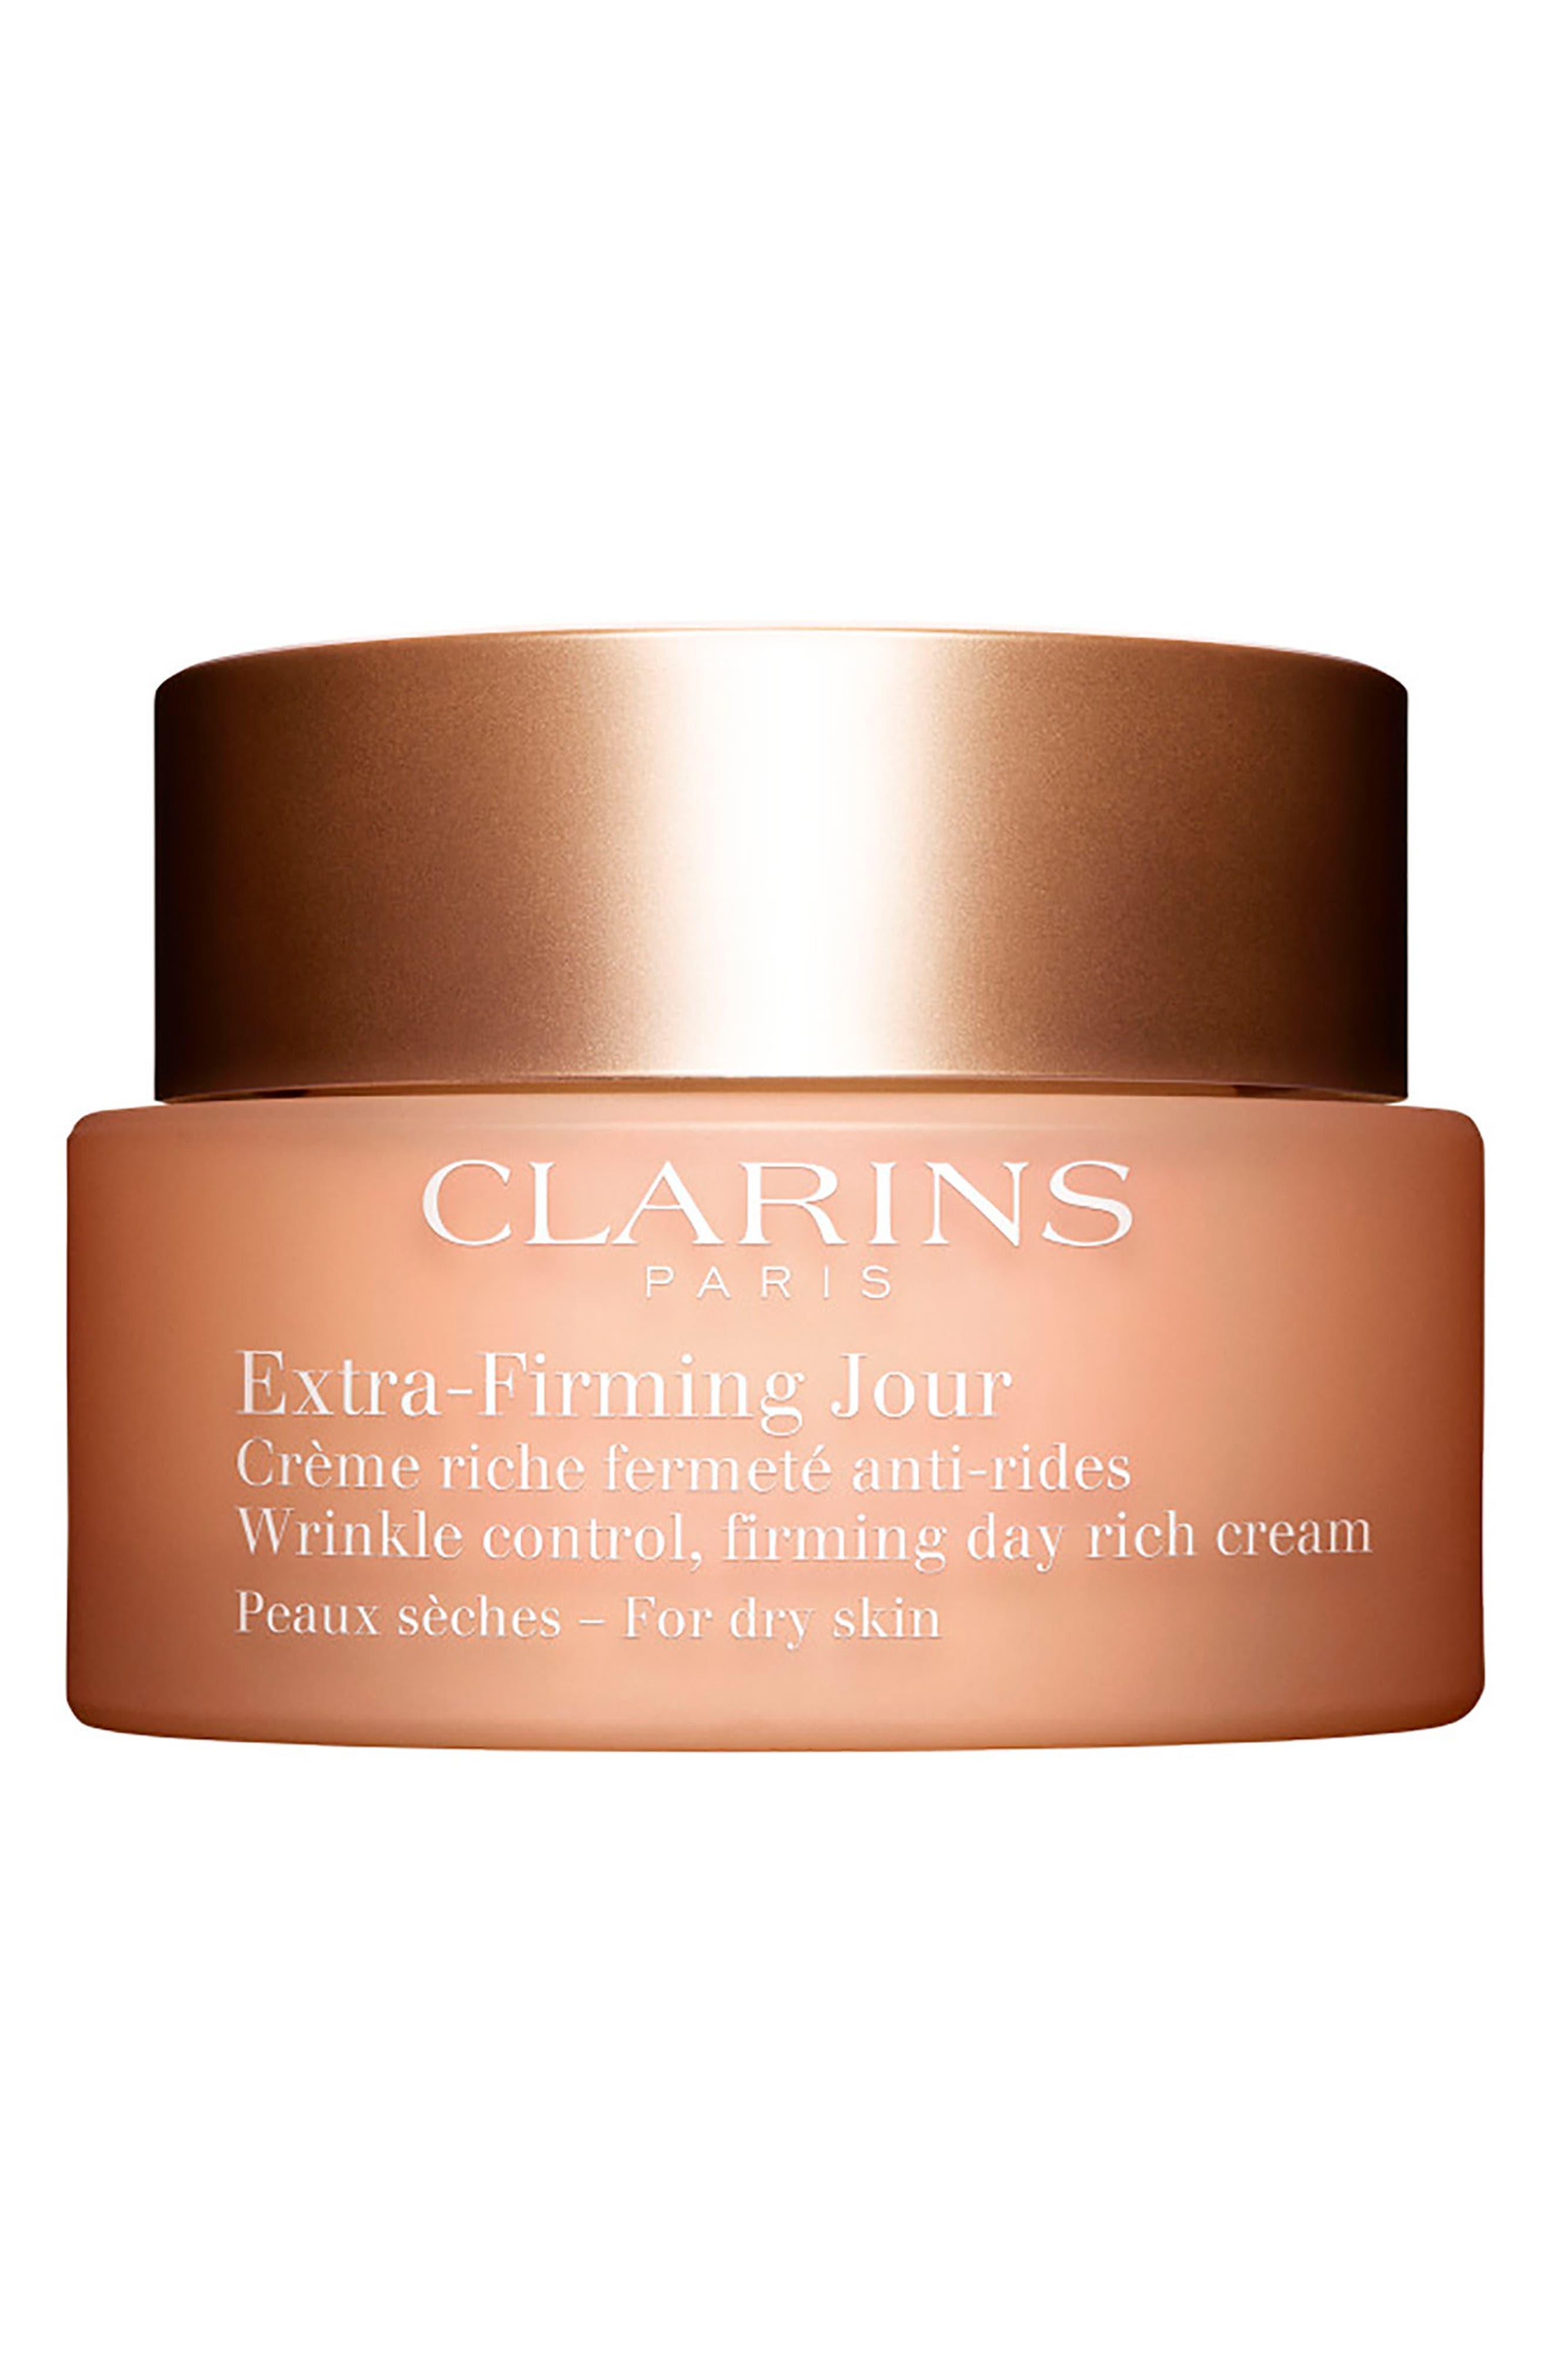 Extra-Firming Wrinkle Control Firming Day Cream for Dry Skin,                         Main,                         color, No Color